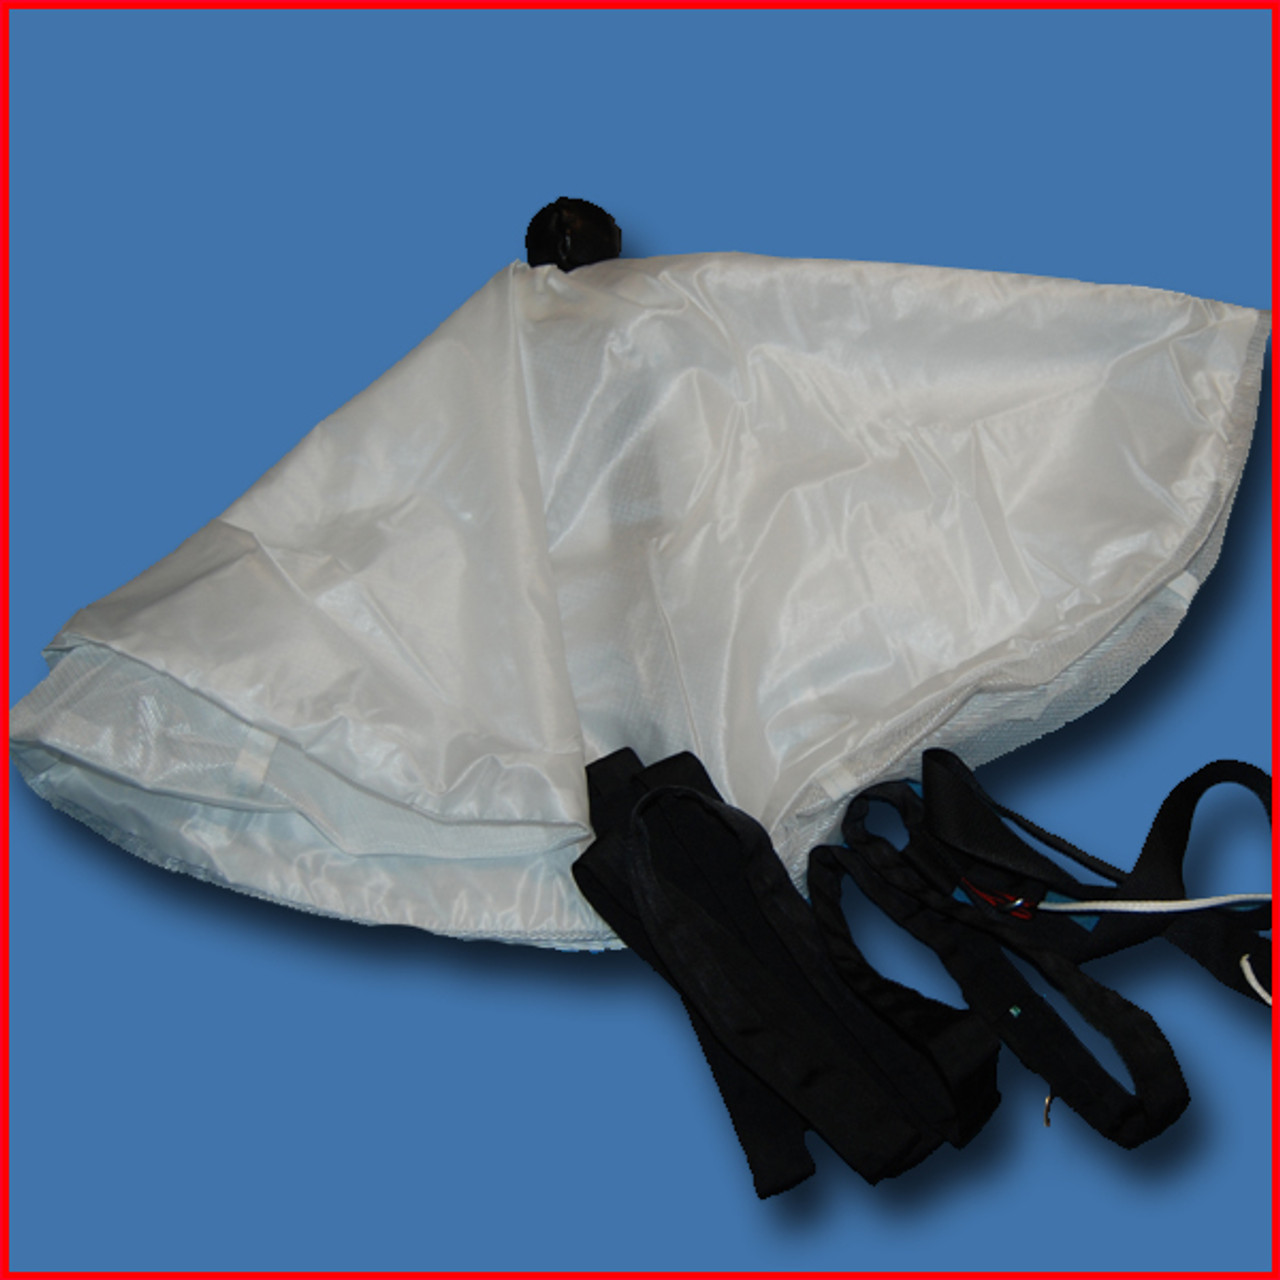 Collapsible Pilot Chute by Chernis (F-111) White with Black Hacky (In Stock)